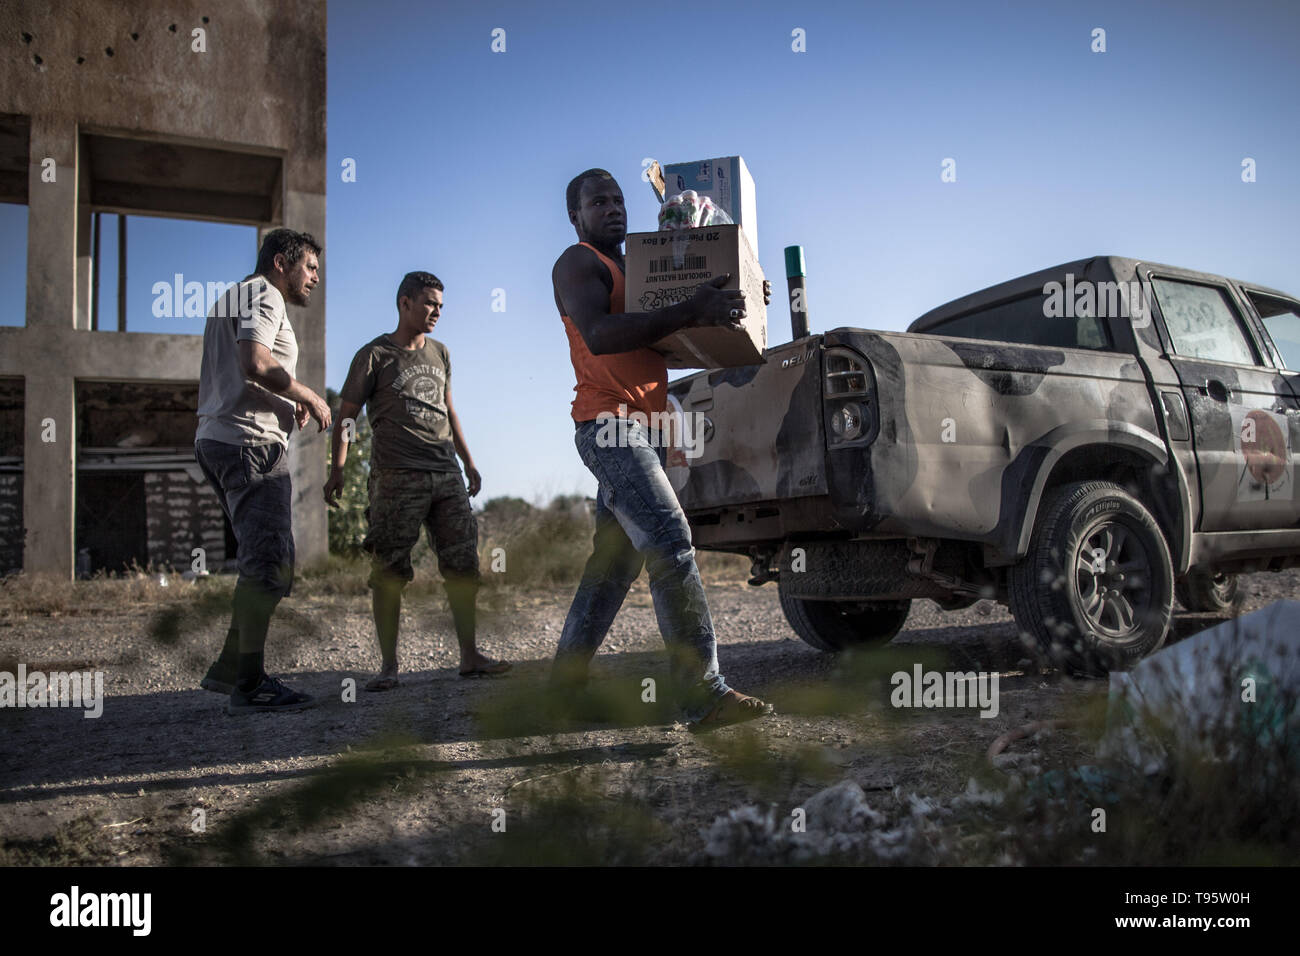 Tripoli, Libya. 16th May, 2019. Fighters from UN-backed government forces distribute food and aid to civilian workers trapped in abandoned farms in the fighting areas near Al-Sawani frontline in Tripoli, Libya, on May 16, 2019. At least six civilians were reported killed and five more injured in an apparent airstrike in populated areas of the Libyan capital of Tripoli, Stephane Dujarric, spokesman for UN Secretary-General Antonio Guterres, said on Thursday. Credit: Amru Salahuddien/Xinhua/Alamy Live News - Stock Image